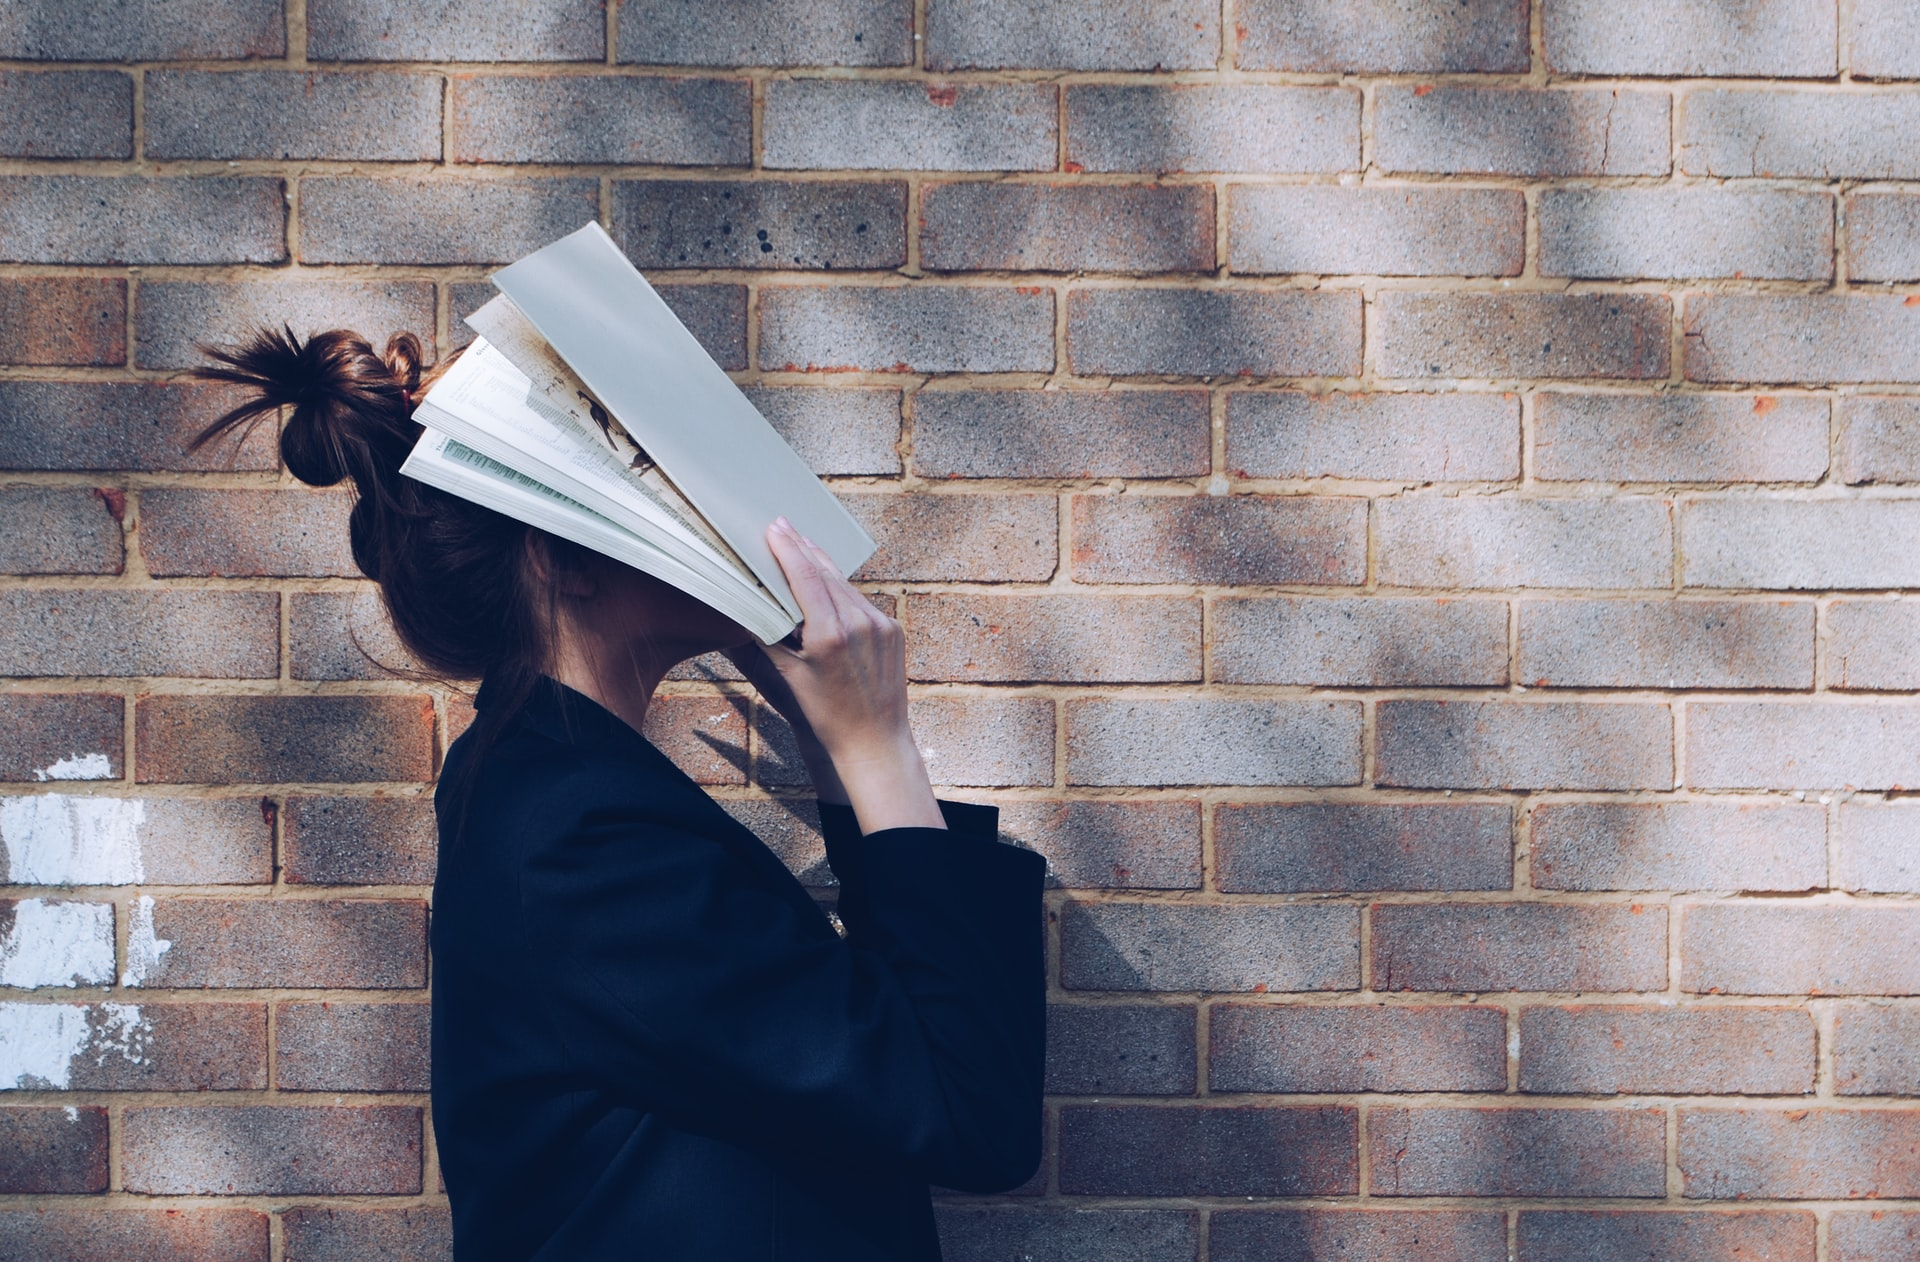 A girl holds a book over her face near a brick wall.